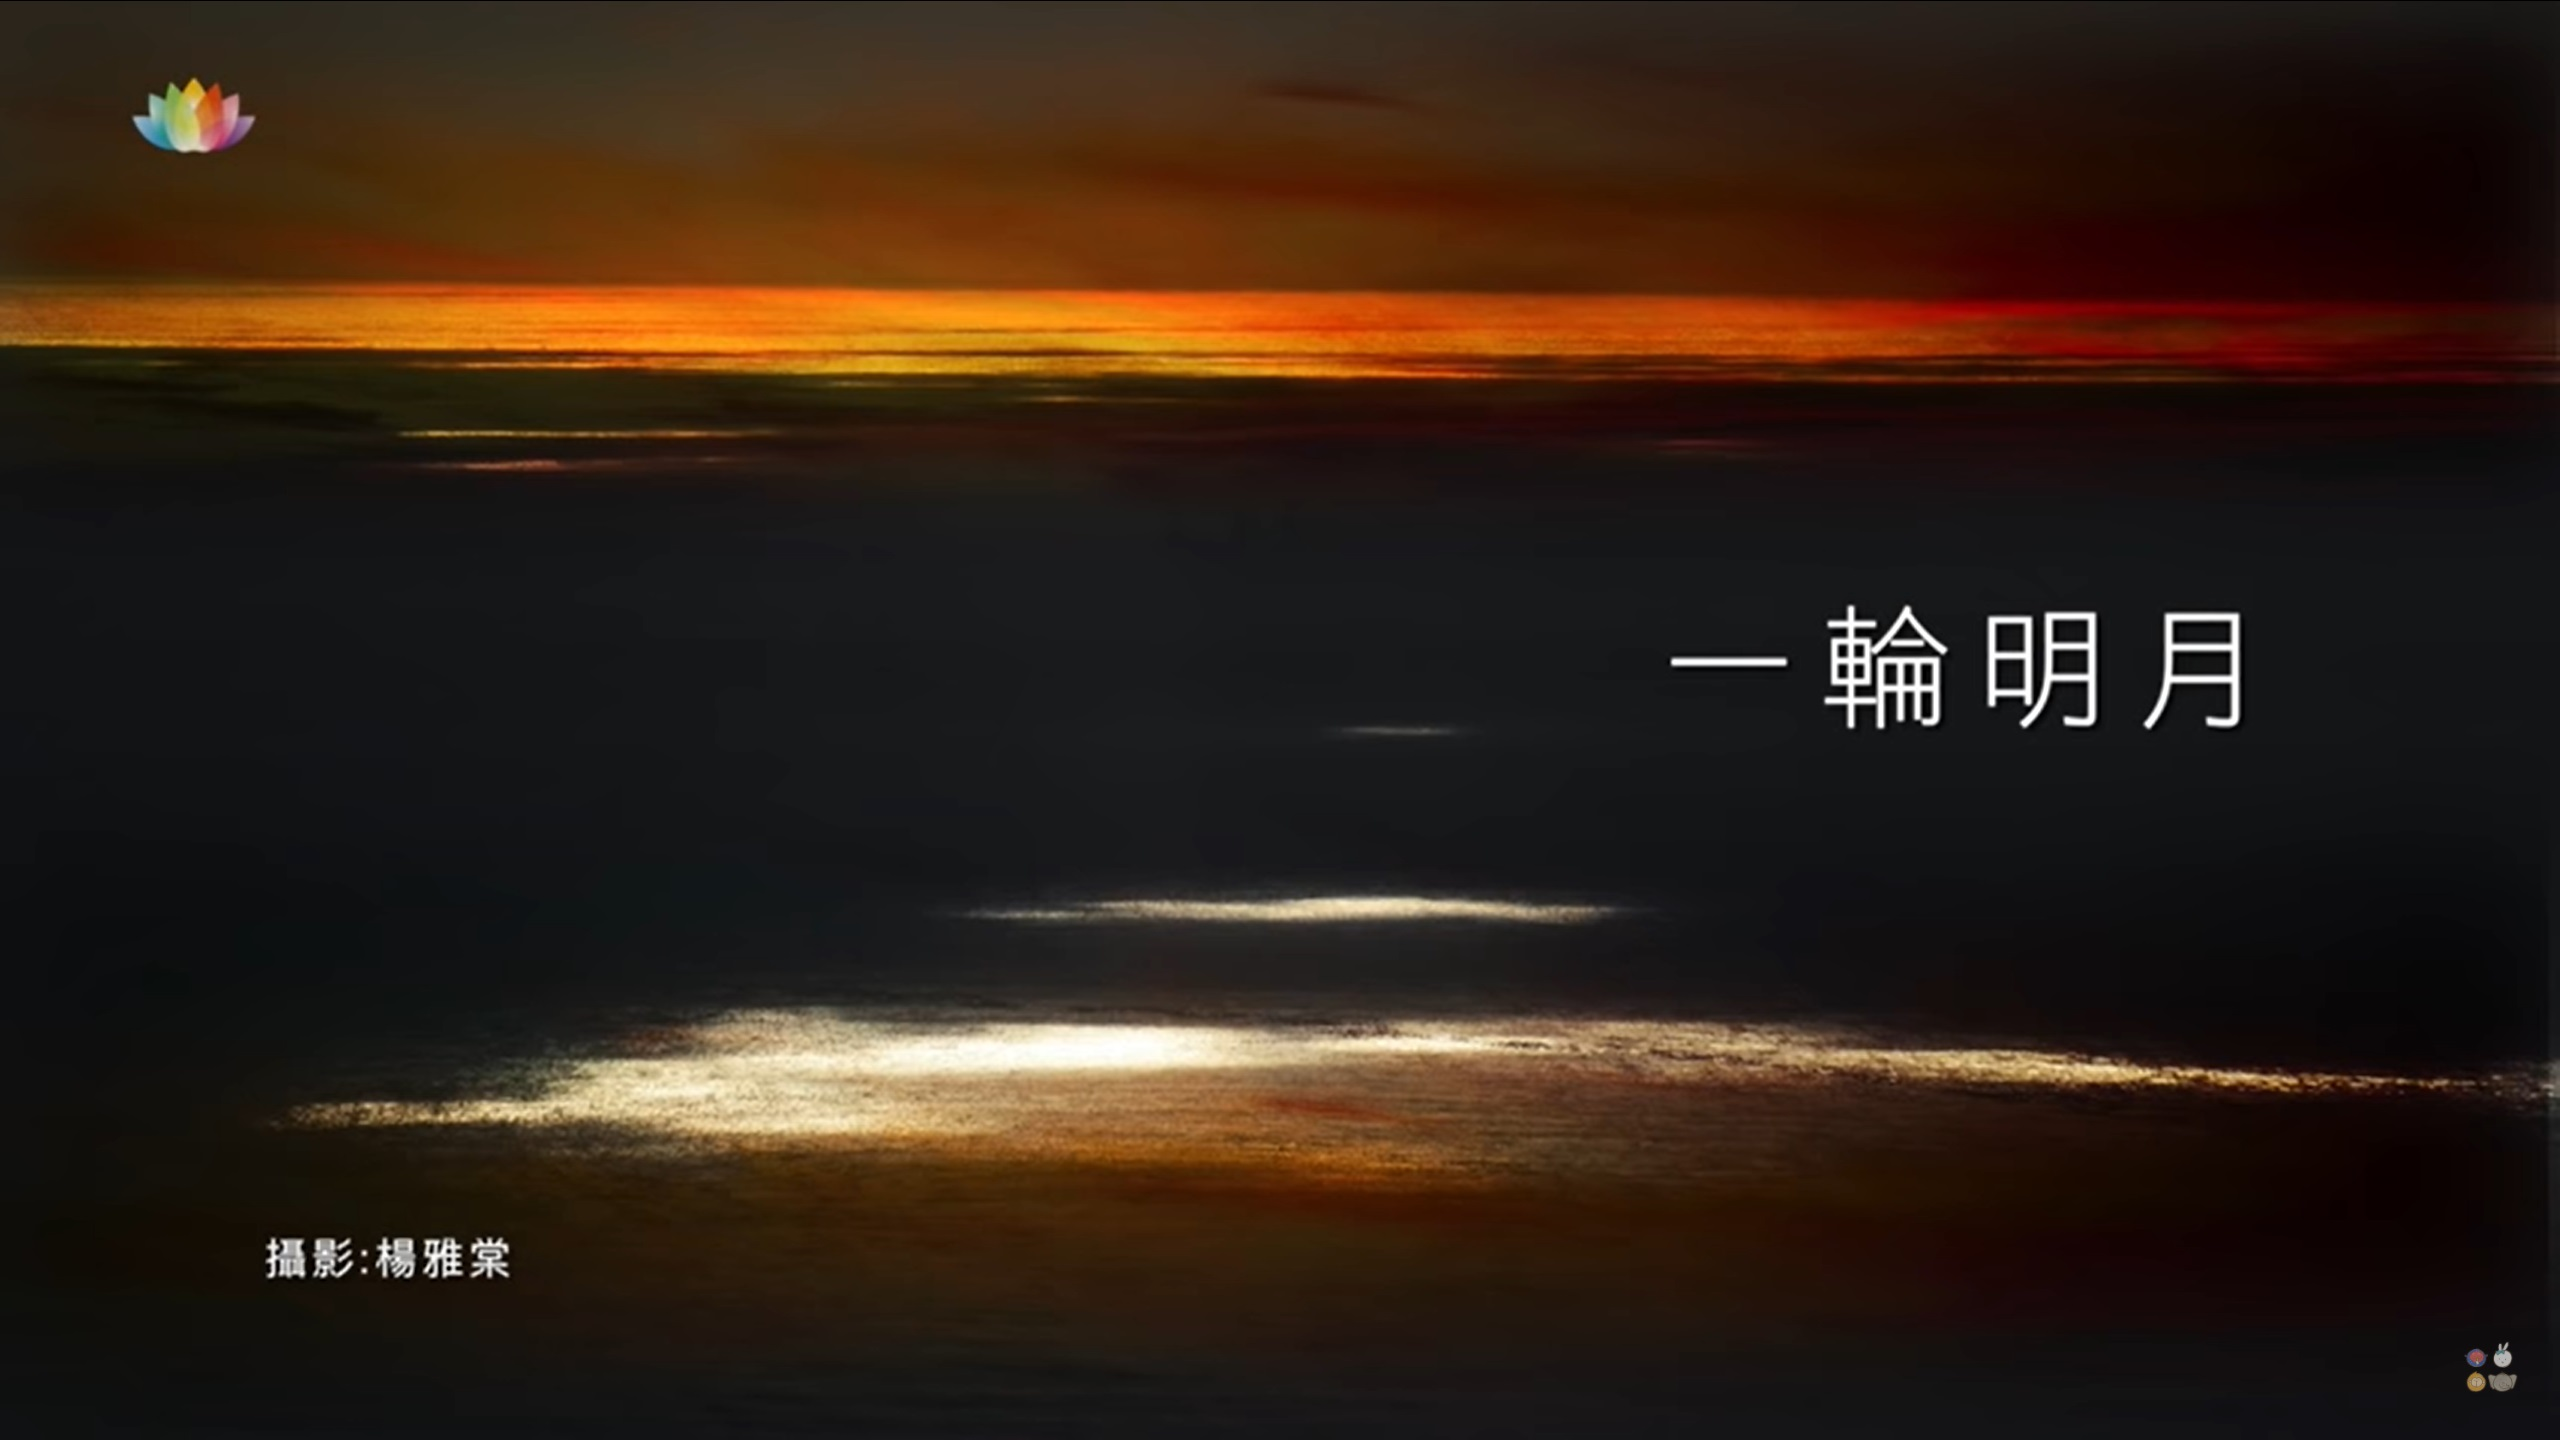 HEARTSTRINGS OF PRAISE:《在這個時候:祝福您》IN THIS MOMENT: A GIFT OF MELODY 22.10.2020